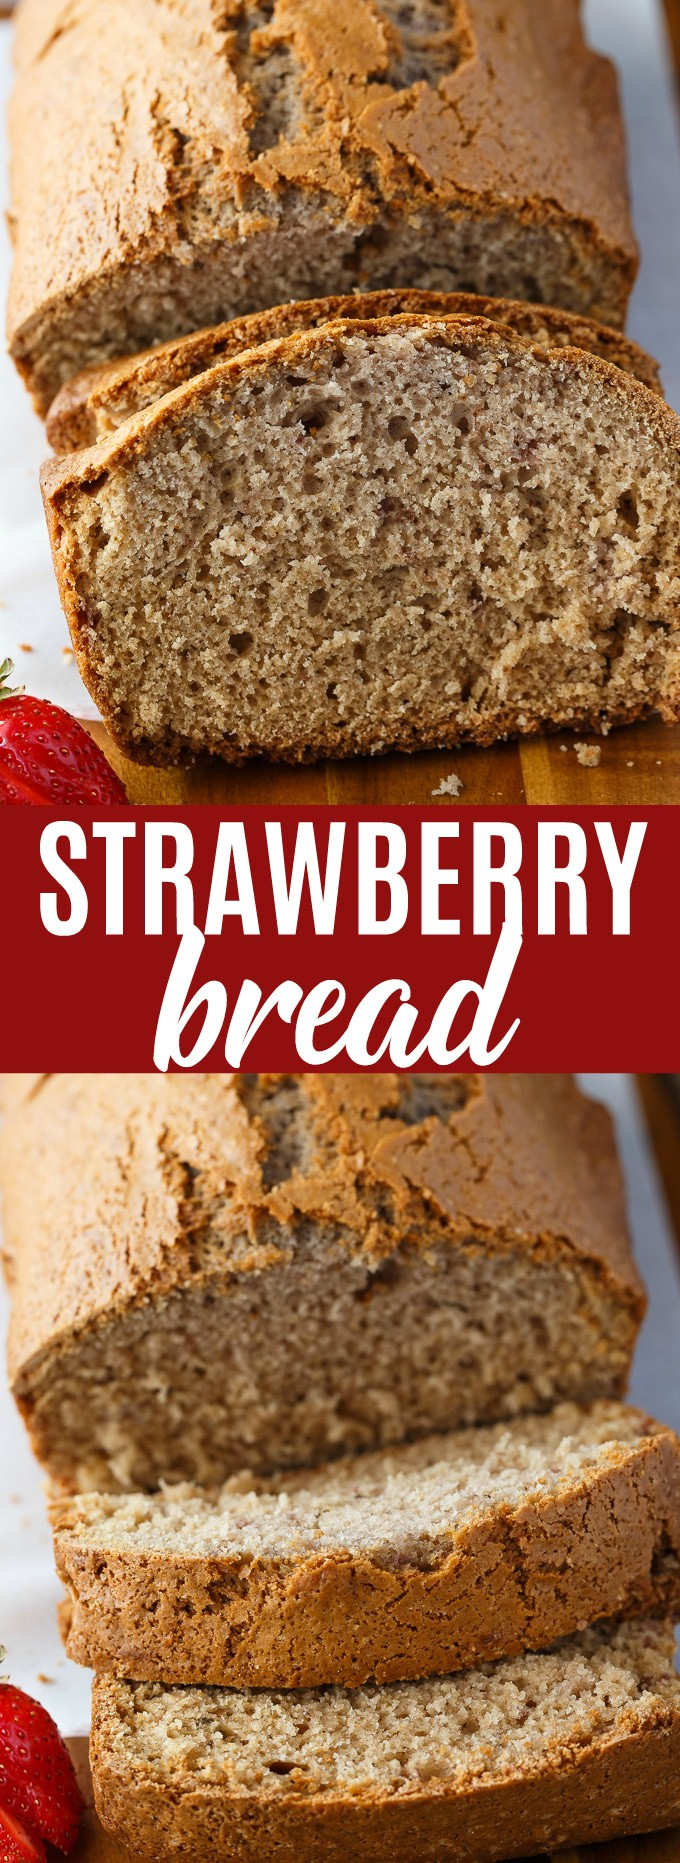 Strawberry bread - An easy dessert bread recipe using frozen strawberries and other dairy free ingredients. A sweet bread that can be baked in a loaf pan or divided into muffins. #thebewitchinkitchen #strawberrybread #sweetbread #simpledessertrecipes #dessertrecipes #dessertbread #easyrecipes #strawberrymuffins #strawberrydessertrecipes